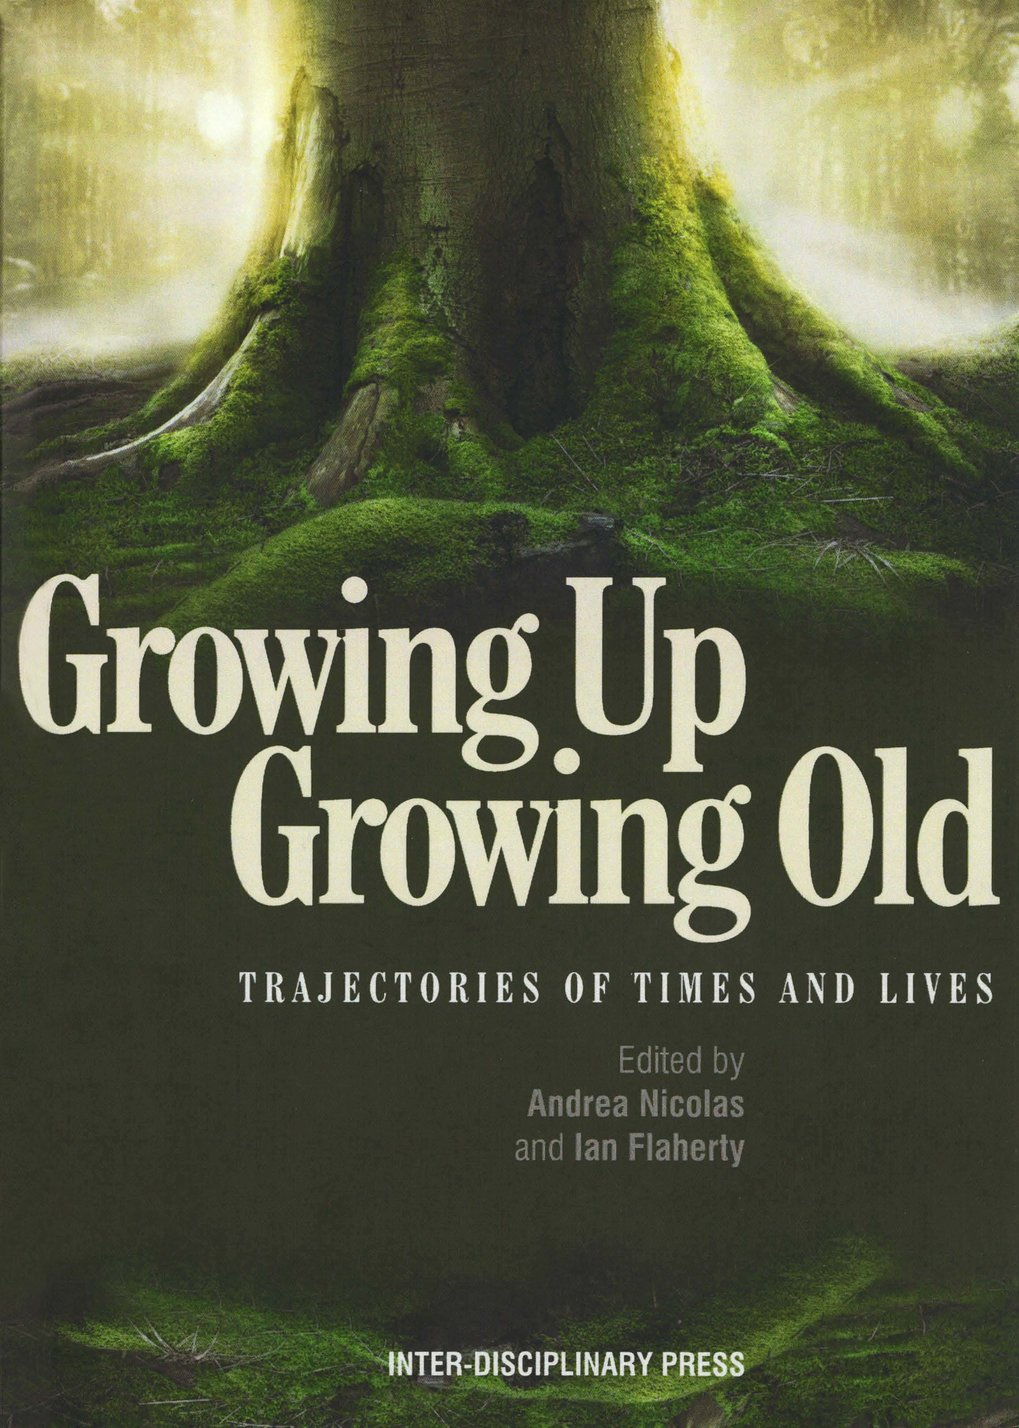 Growing Up, Growing Old: trajectories of times and lives